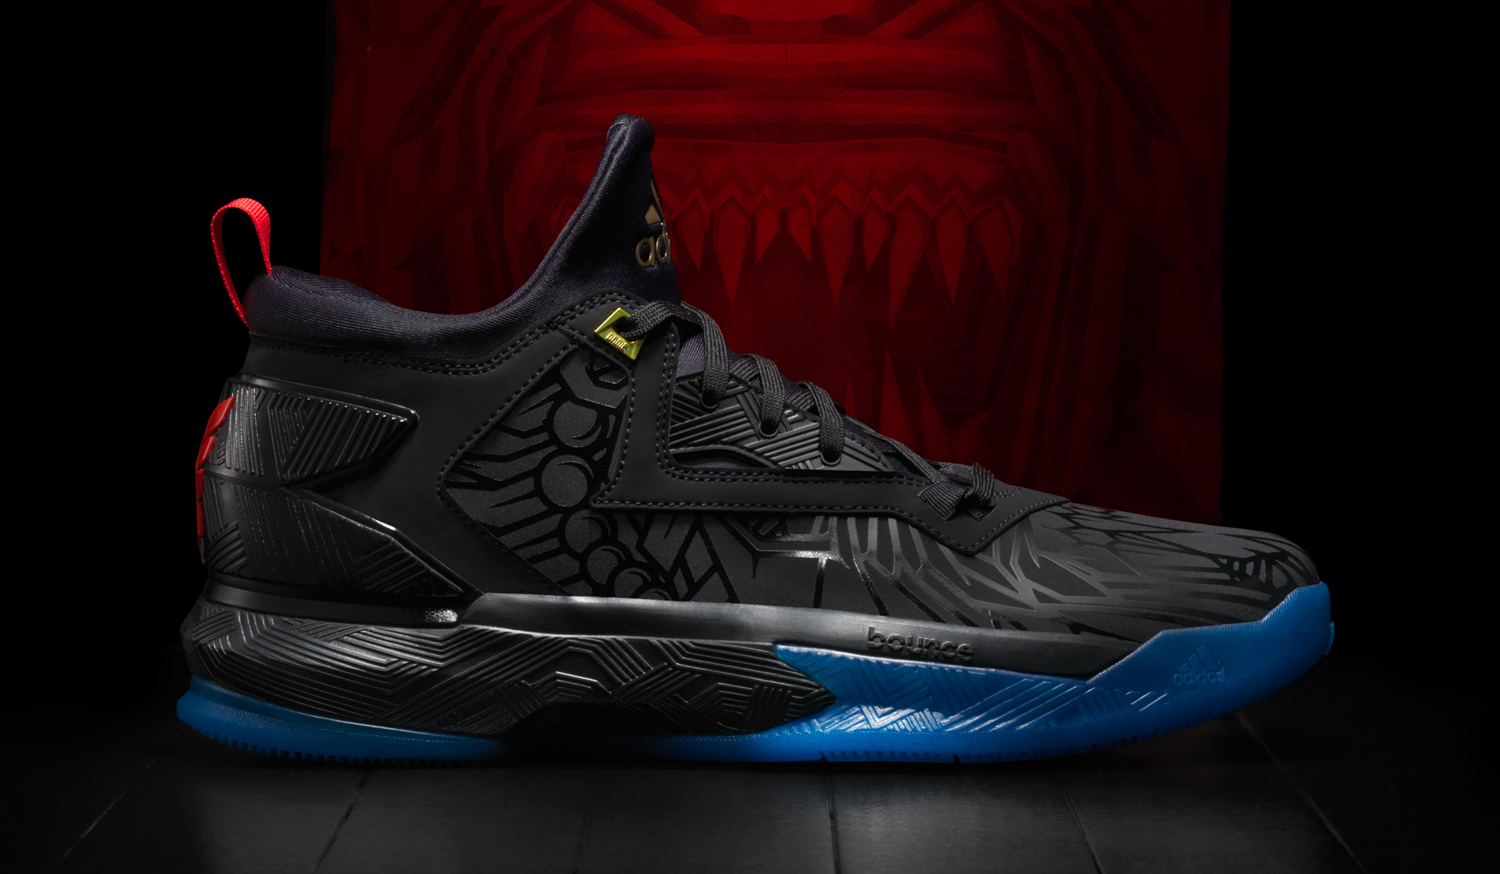 reputable site 817de 21a41 Adidas Basketball Rings in Chinese New Year via 'Fire Monkey ...